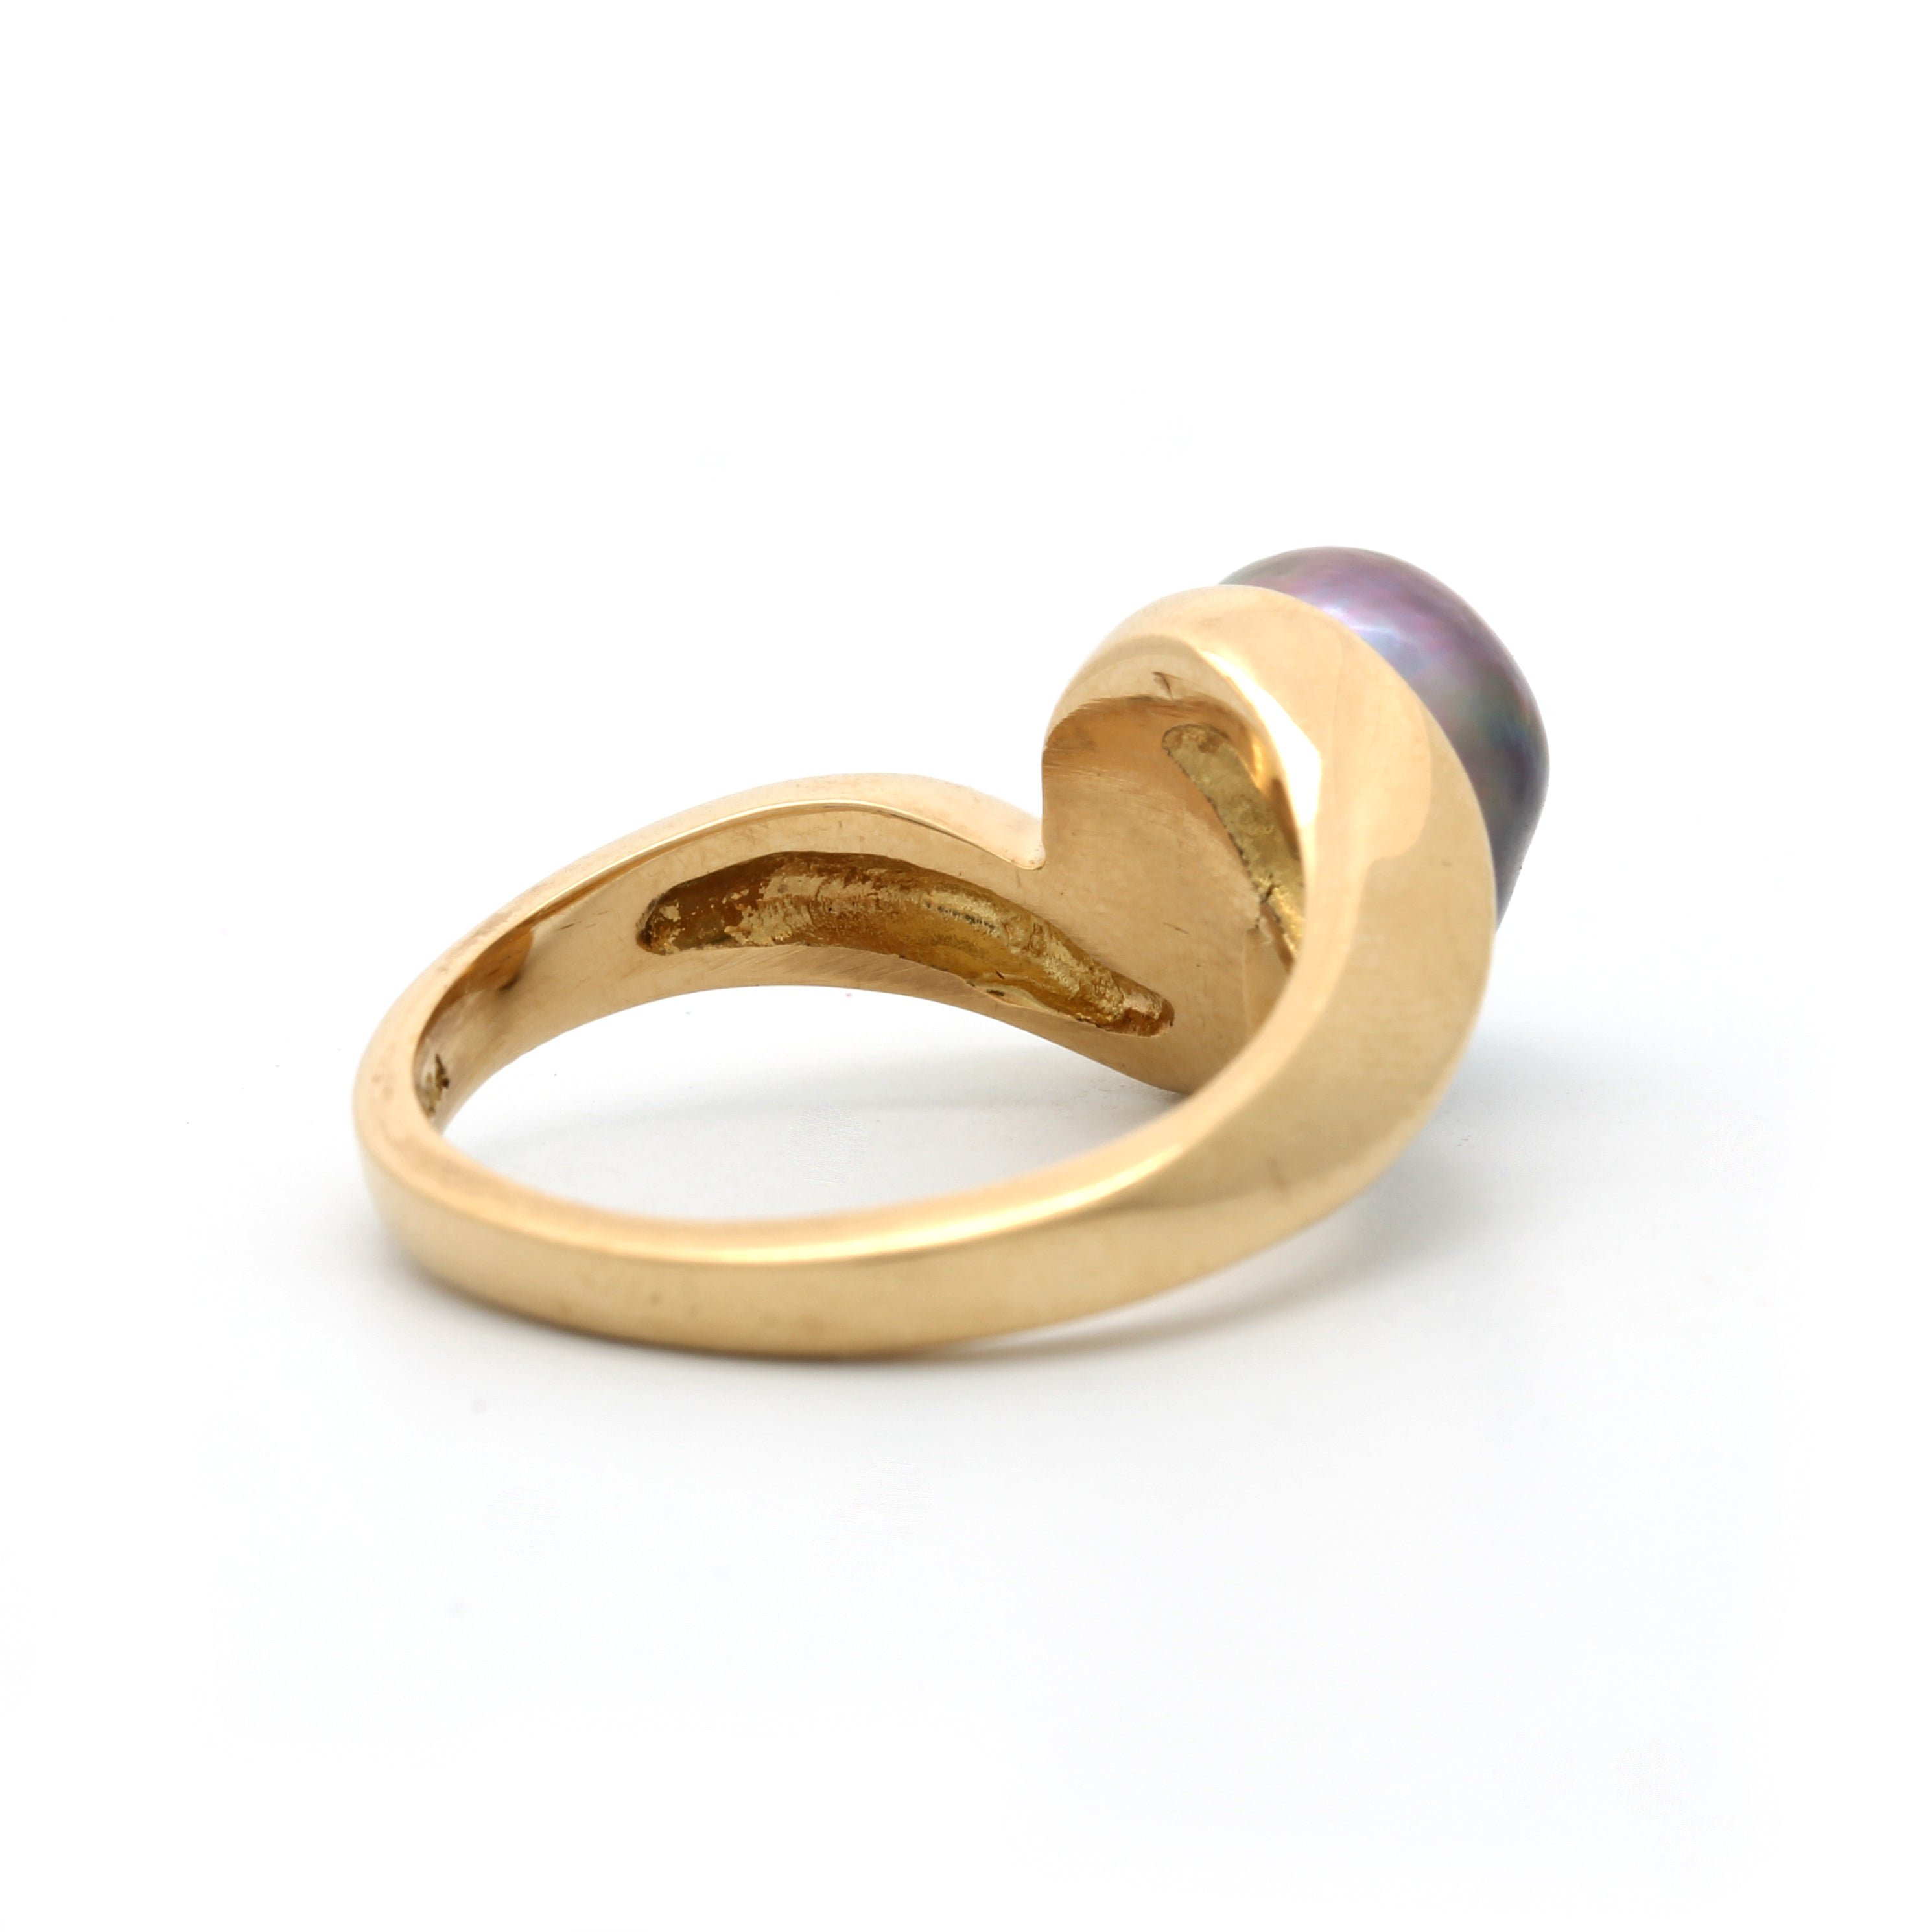 NEW Gorgeous 18K Yellow Gold Ring with Cortez Pearl By Kathe Mai